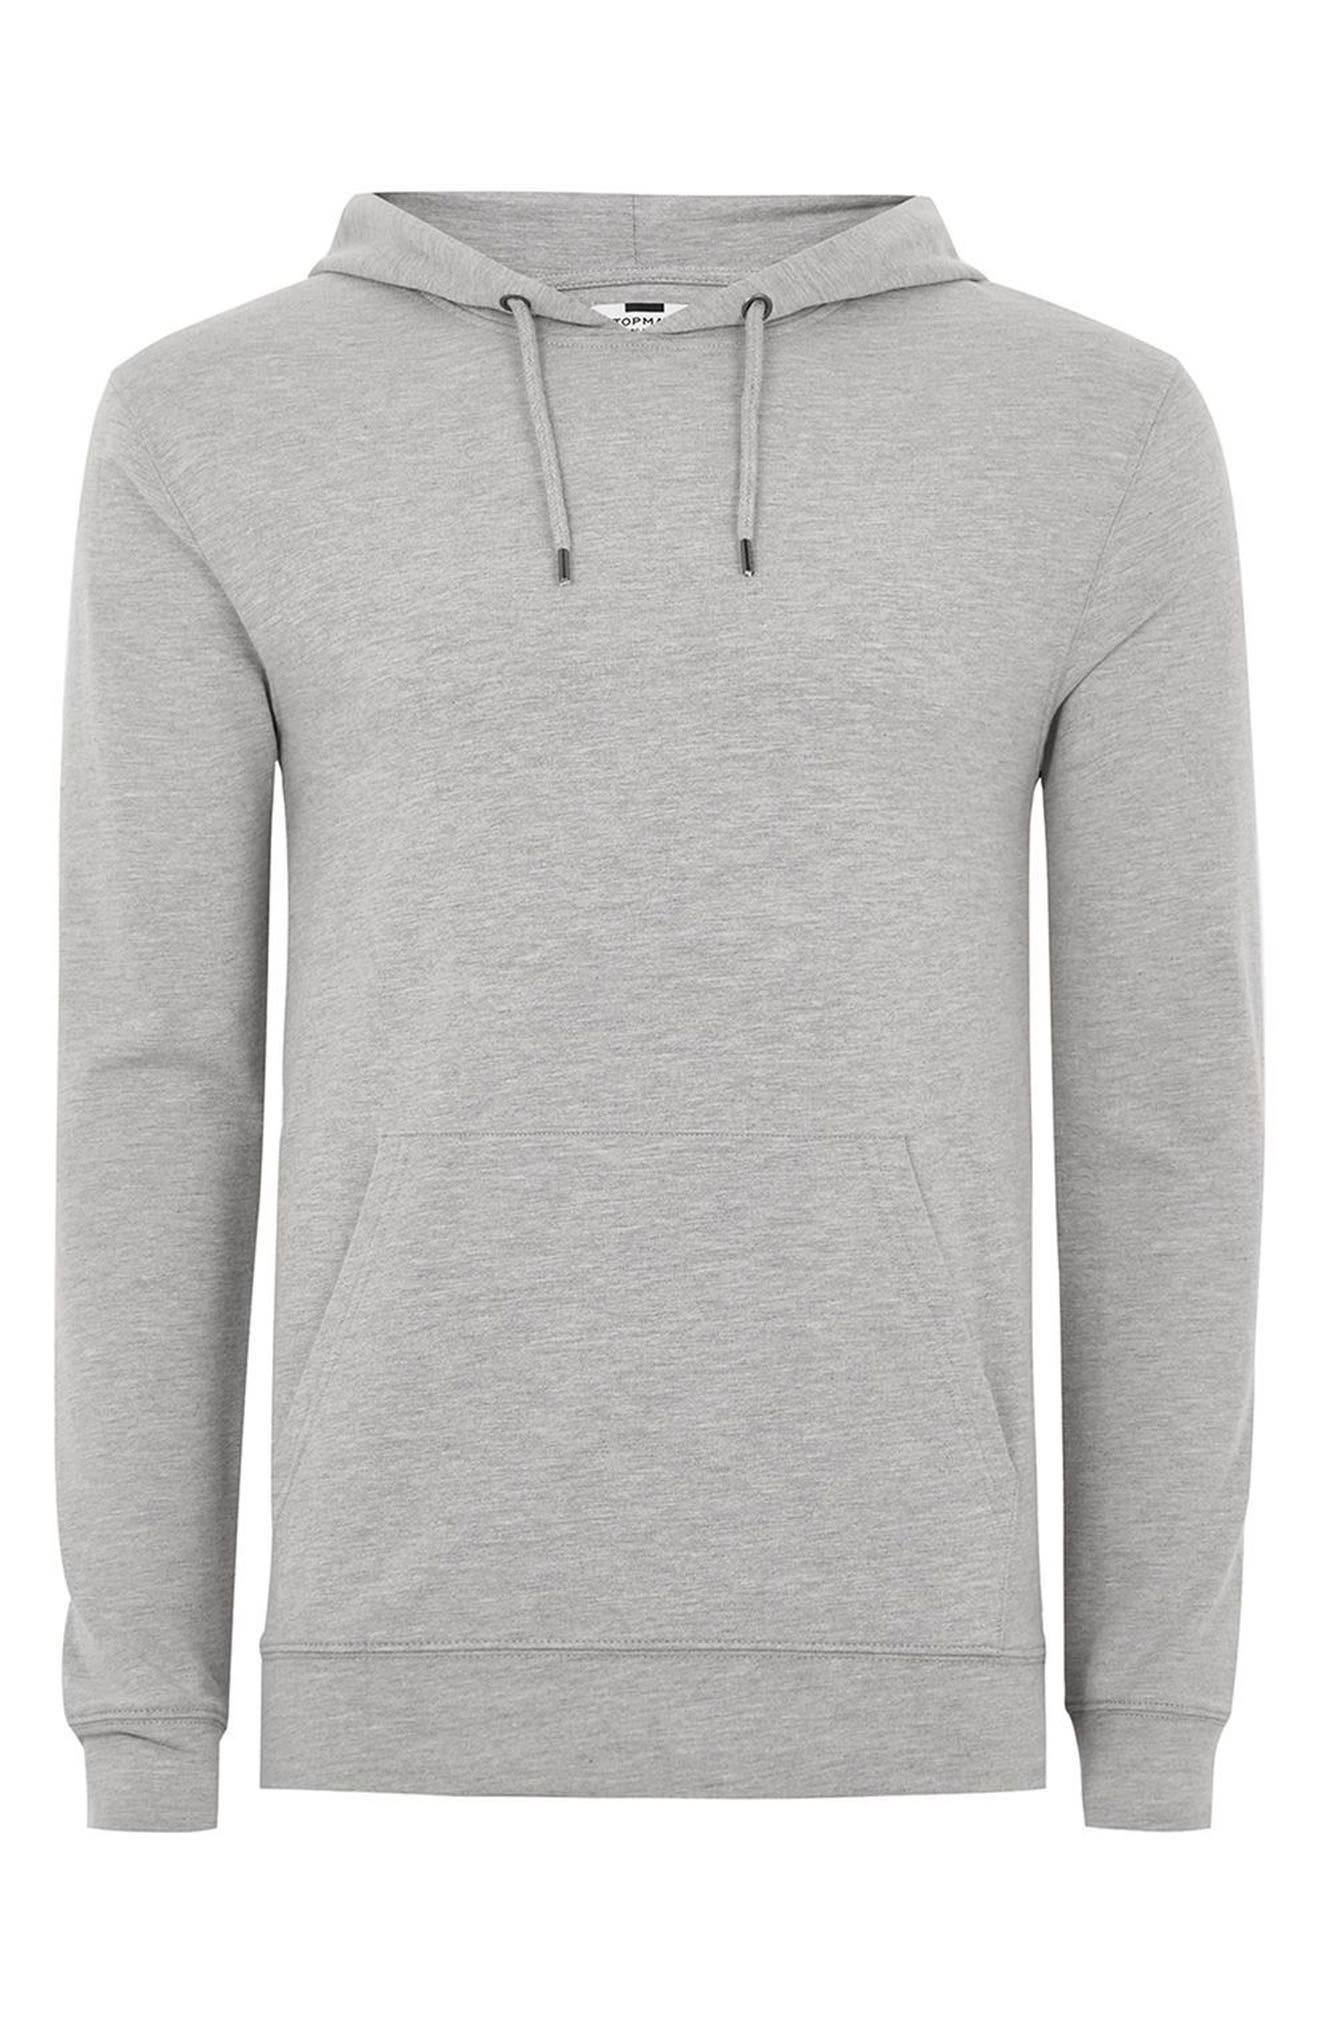 Ultra Muscle Fit Hoodie,                             Alternate thumbnail 4, color,                             Light Grey